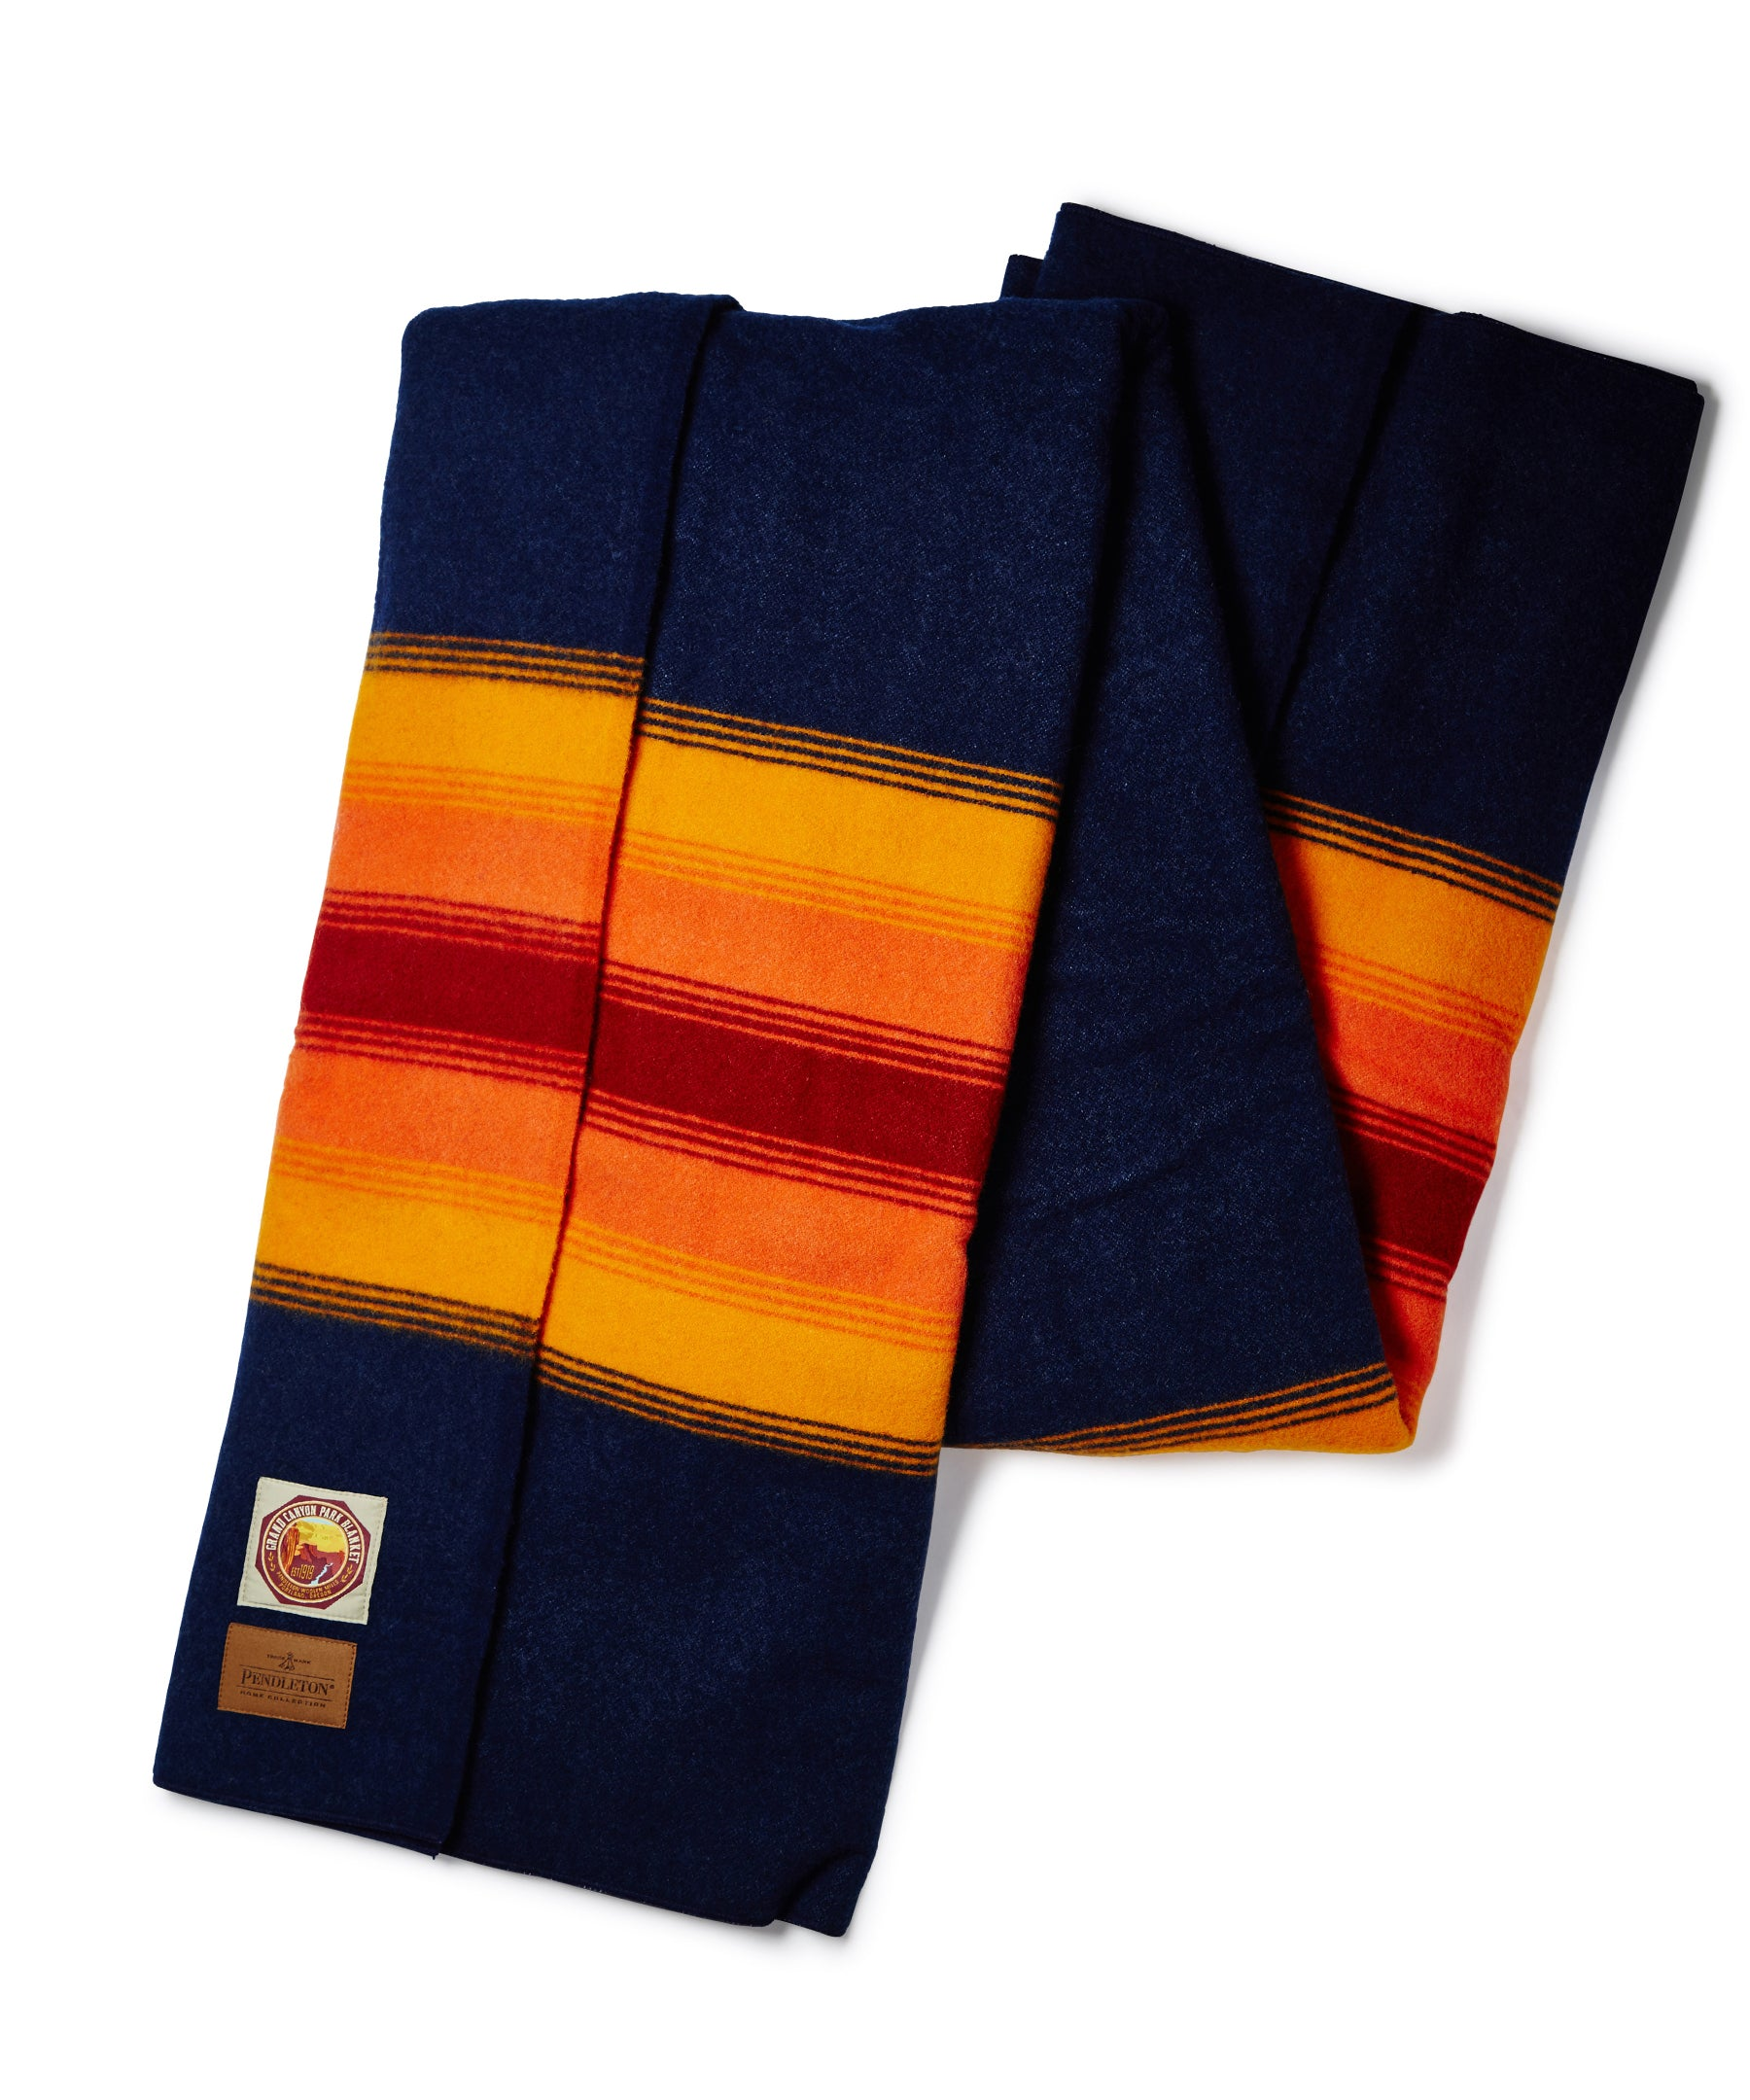 National Park Blanket (Grand Canyon) by Pendleton